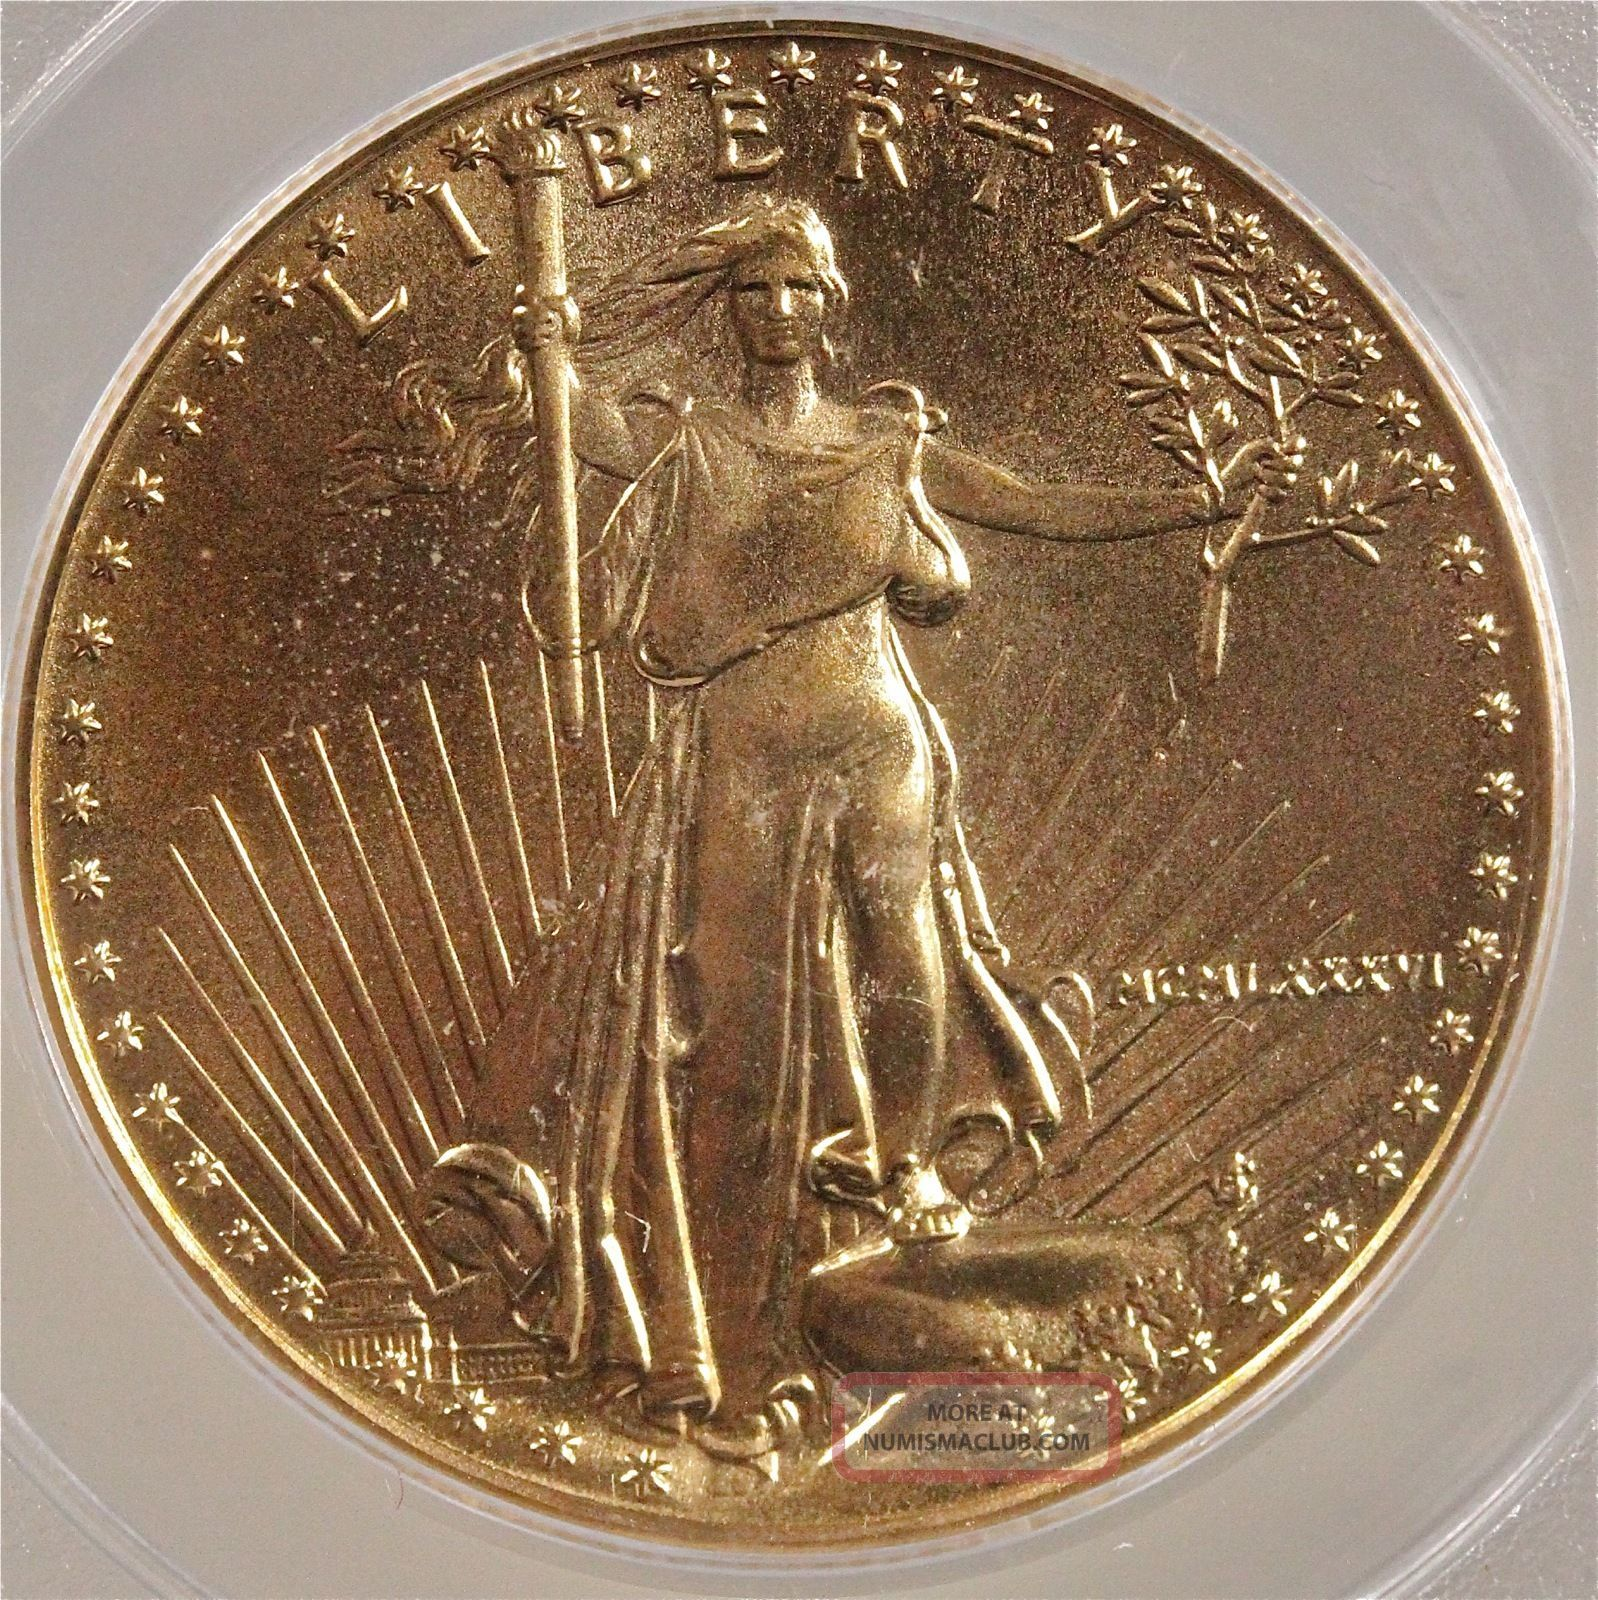 1986 American Gold Eagle Pcgs Ms69 189 Oz Gold 25 Dollar Coin G 25